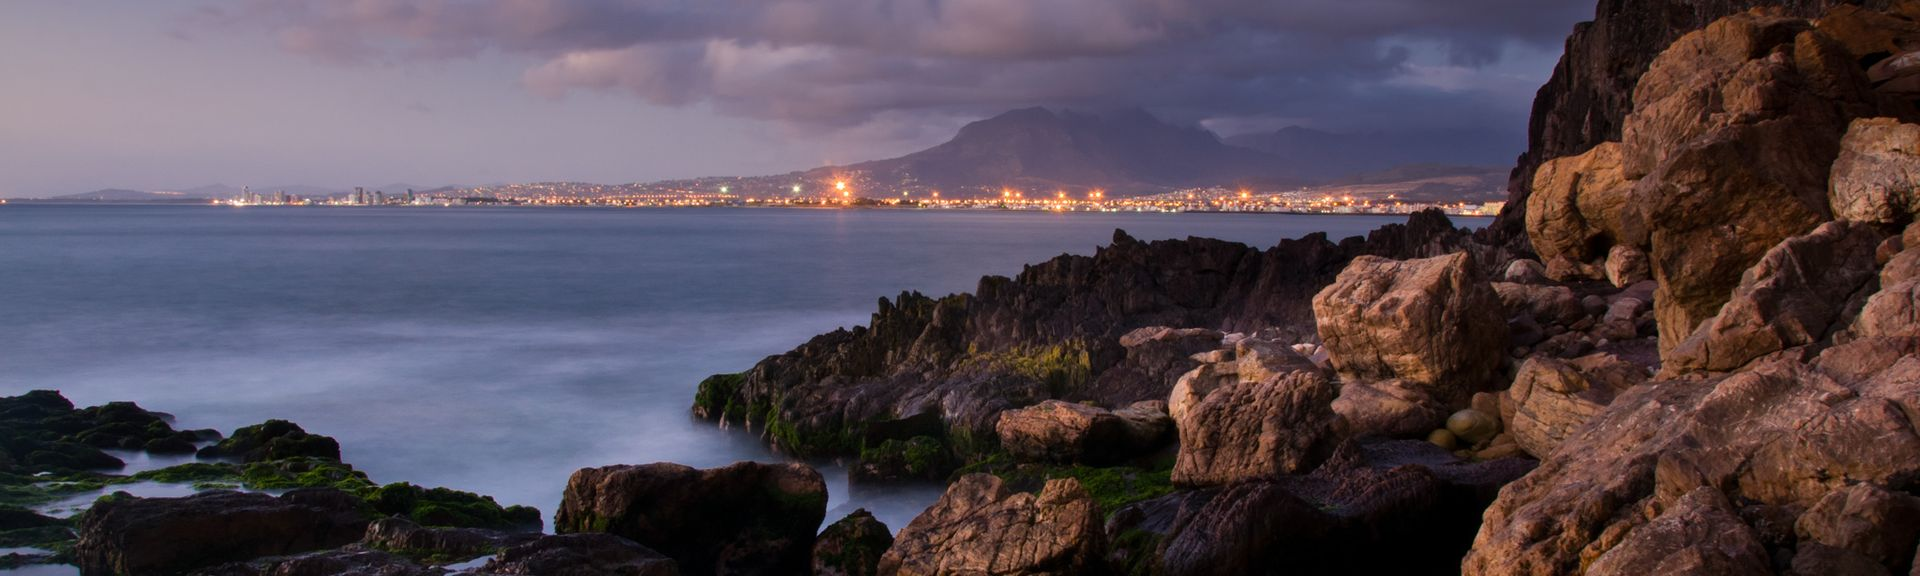 Strand, Cape Town, Western Cape, South Africa